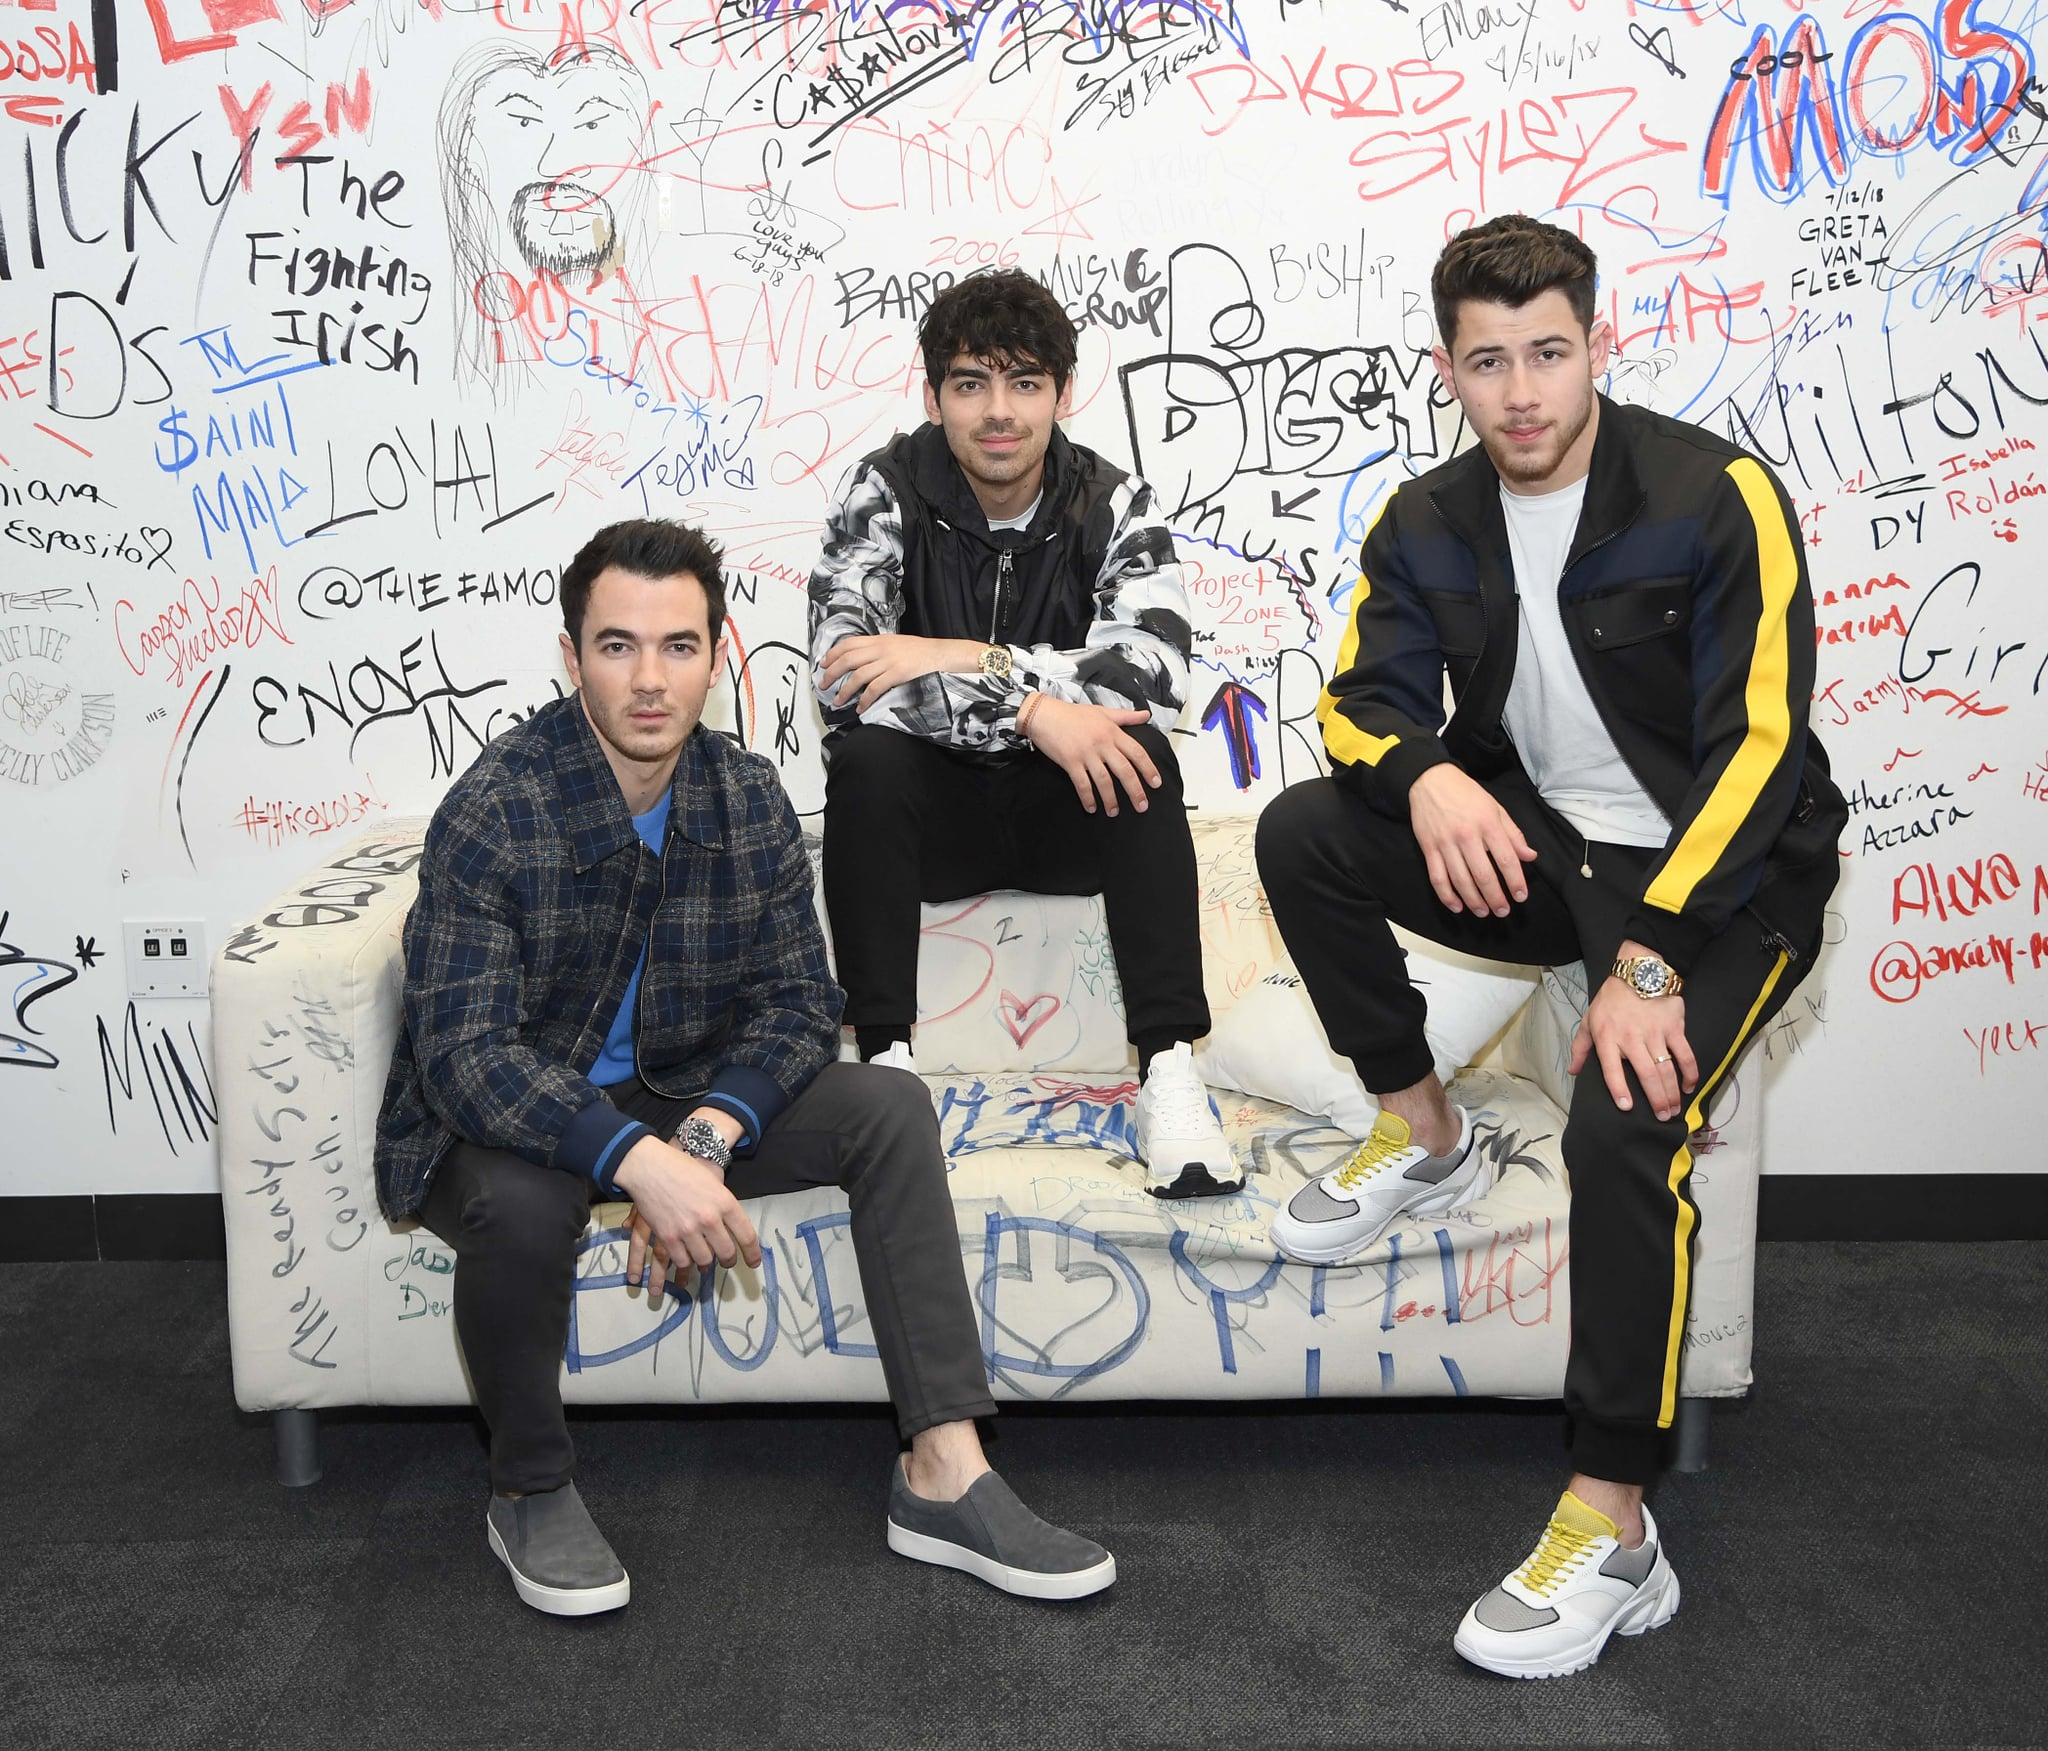 NEW YORK, NEW YORK - MARCH 01: (EXCLUSIVE COVERAGE) Kevin Jonas, Joe Jonas, Nick Jonas of  The Jonas Brothers Visit Music Choice on March 01, 2019 in New York City. (Photo by Dimitrios Kambouris/Getty Images)